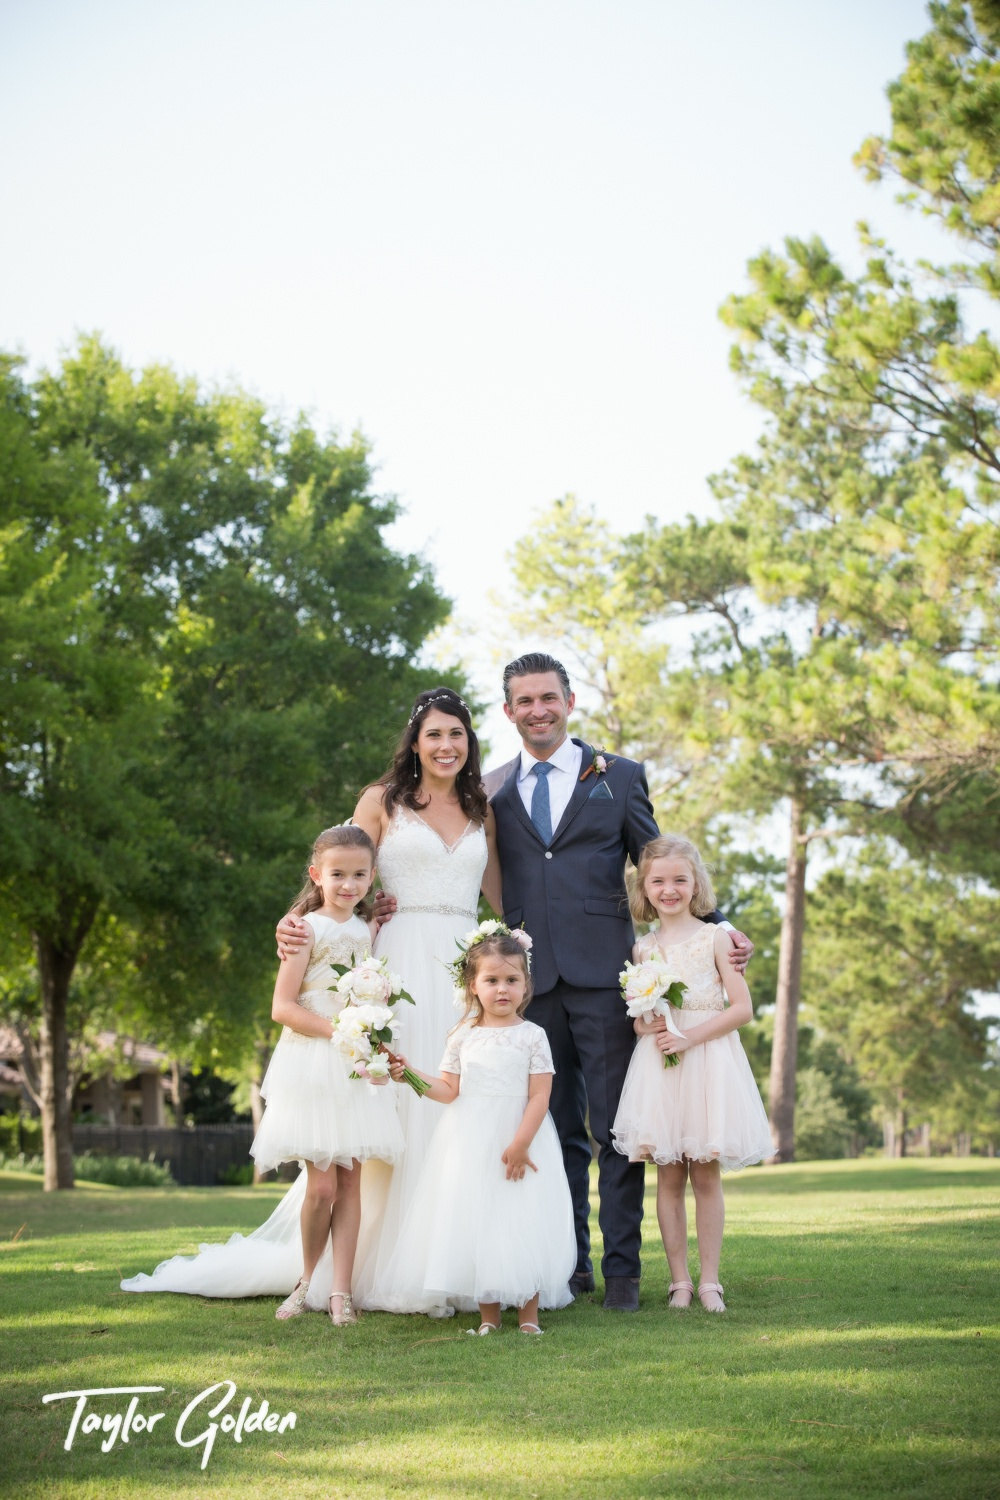 Houston Wedding Photographer Taylor Golden30.jpg